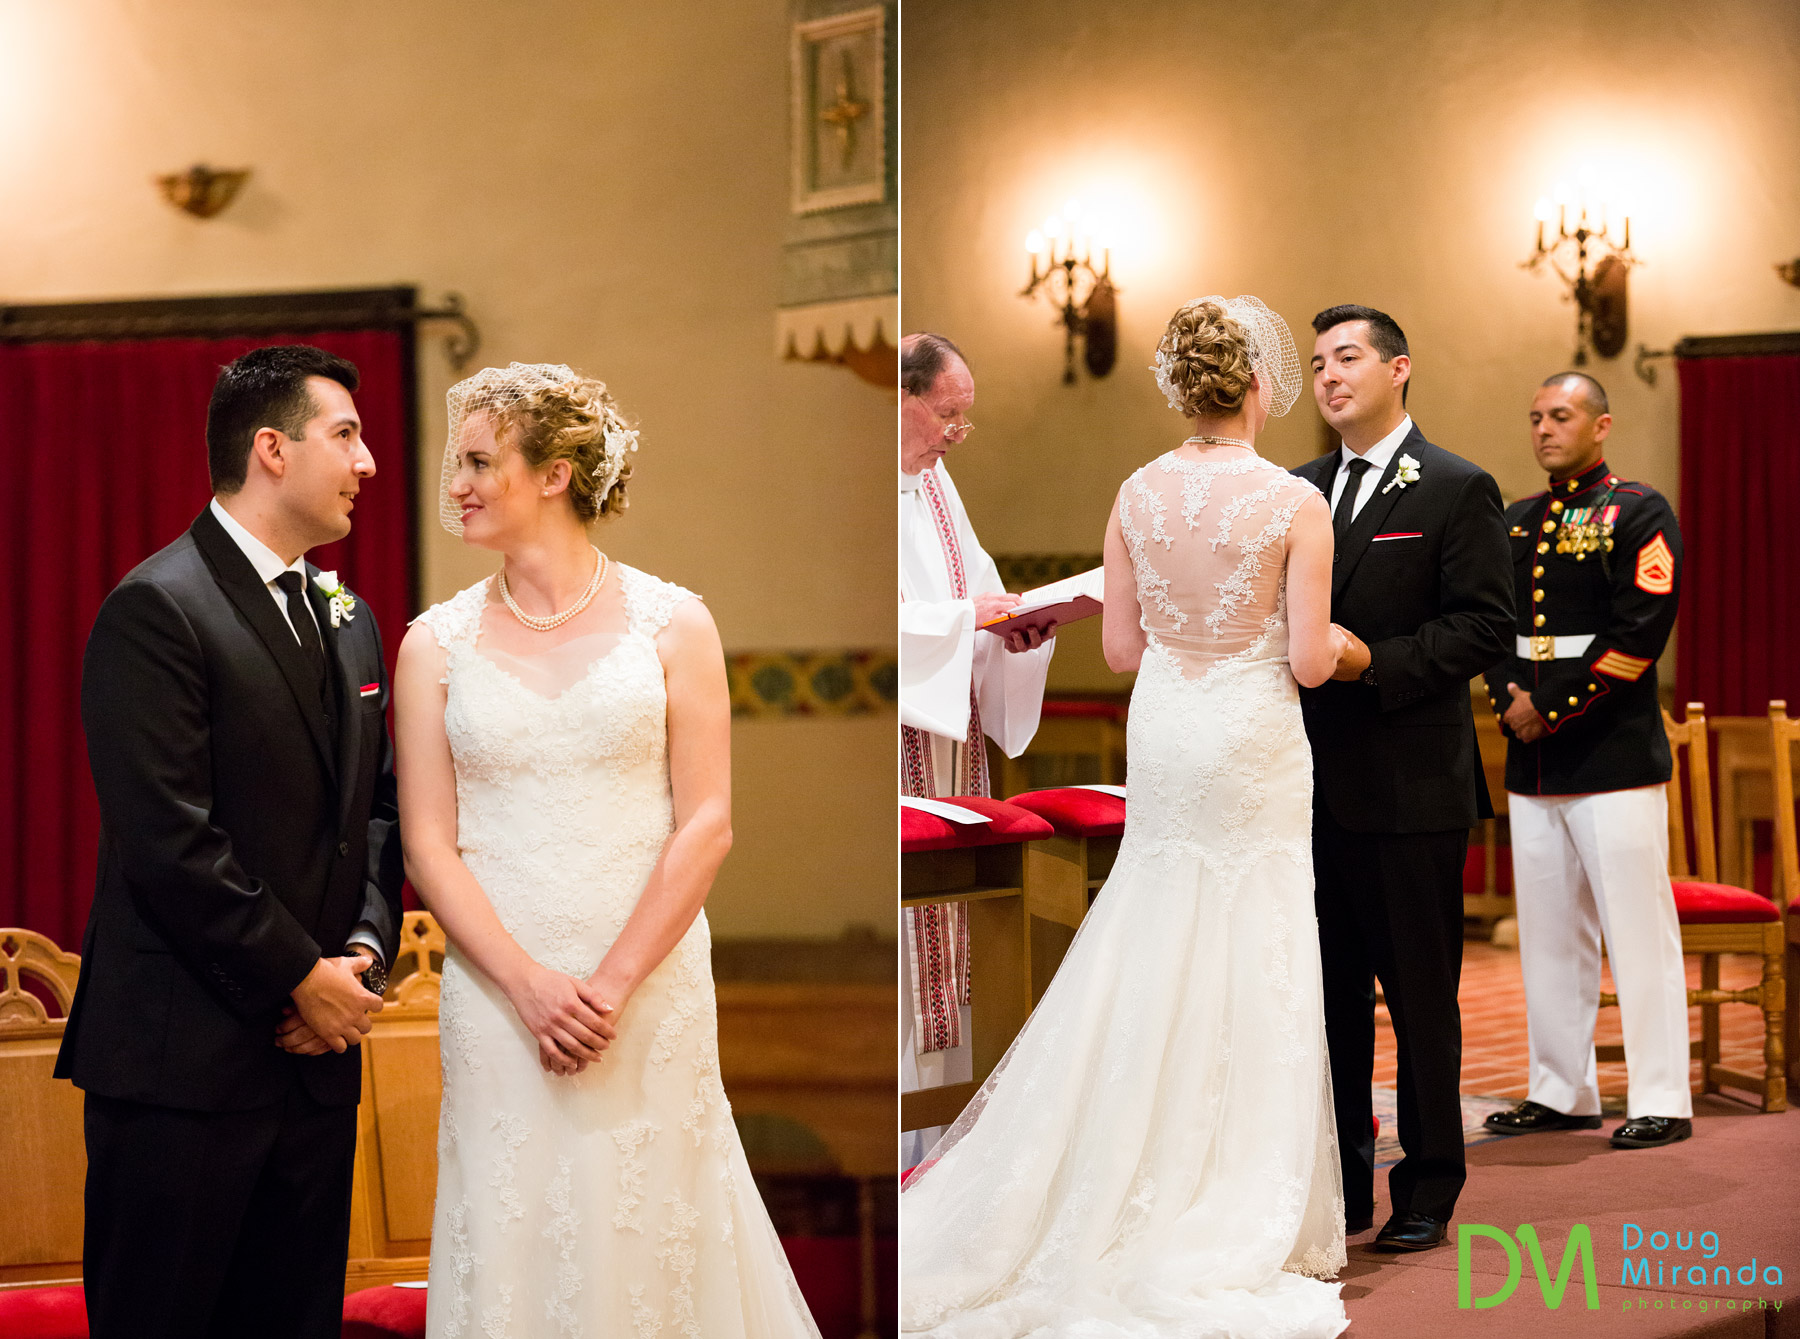 wedding photos of santa clara university mission ceremony